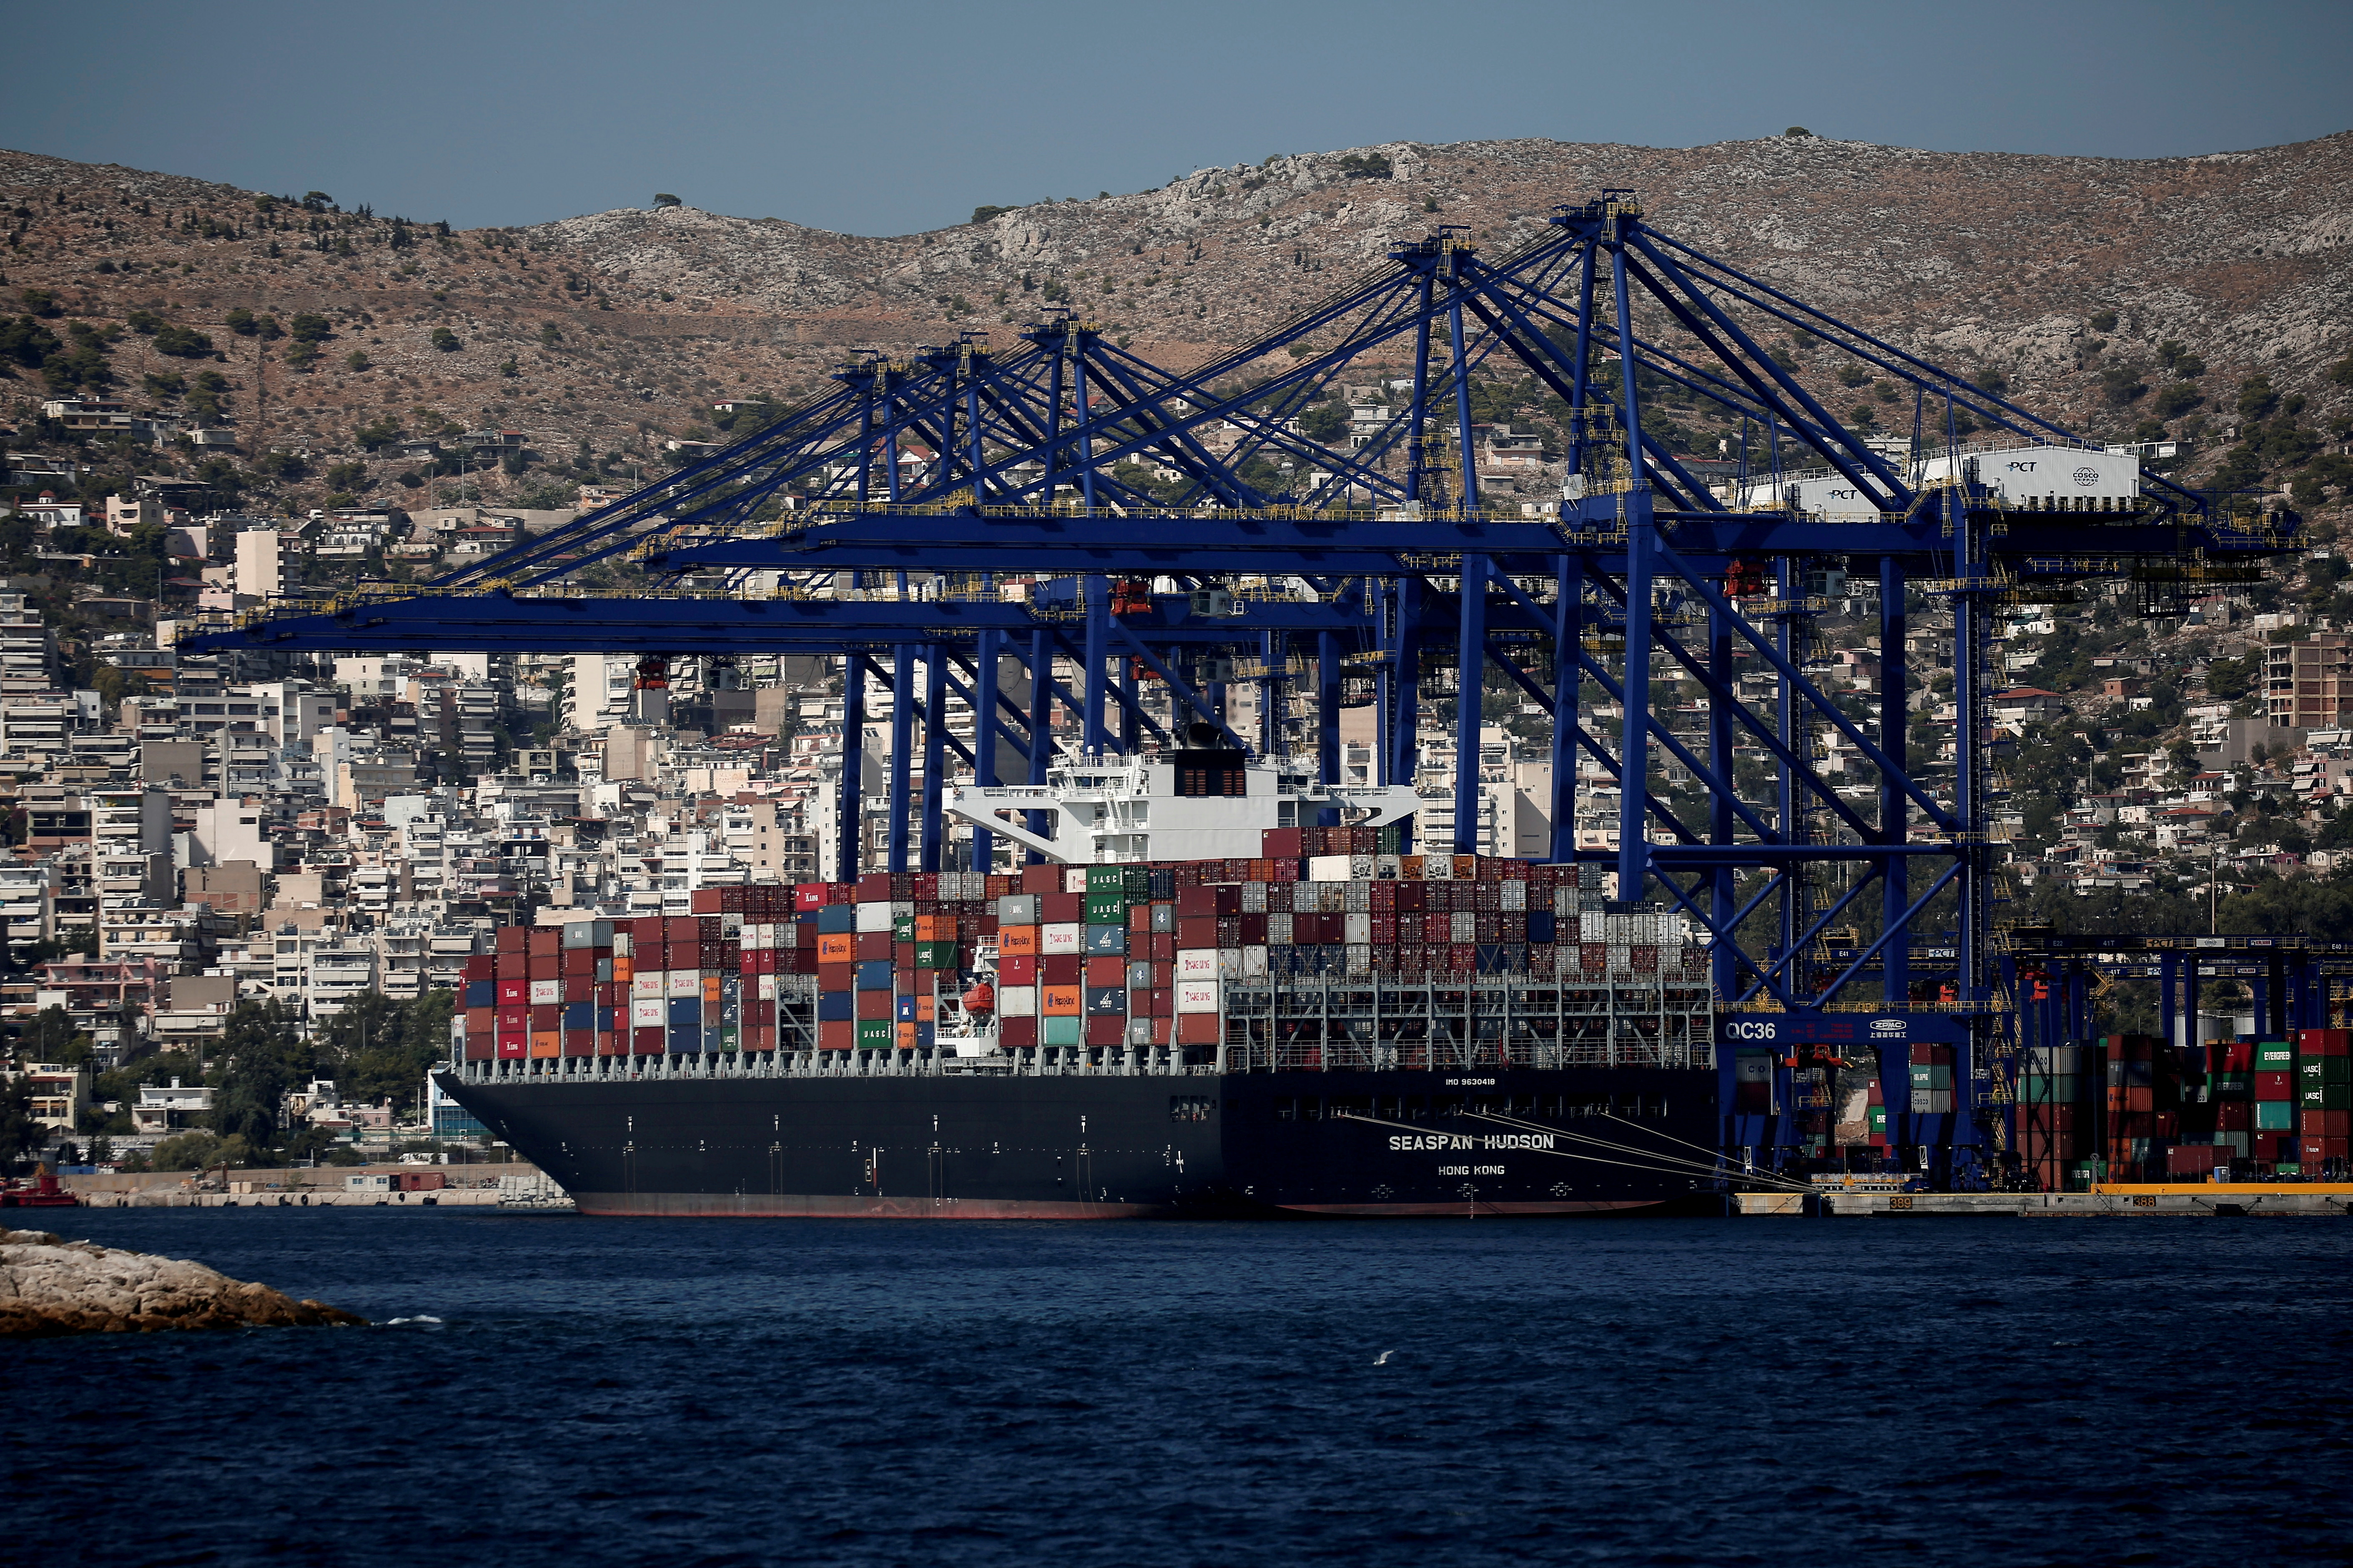 A cargo ship is moored at the Piraeus Container Terminal, near Athens, Greece, September 20, 2017. REUTERS/Alkis Konstantinidis/File Photo